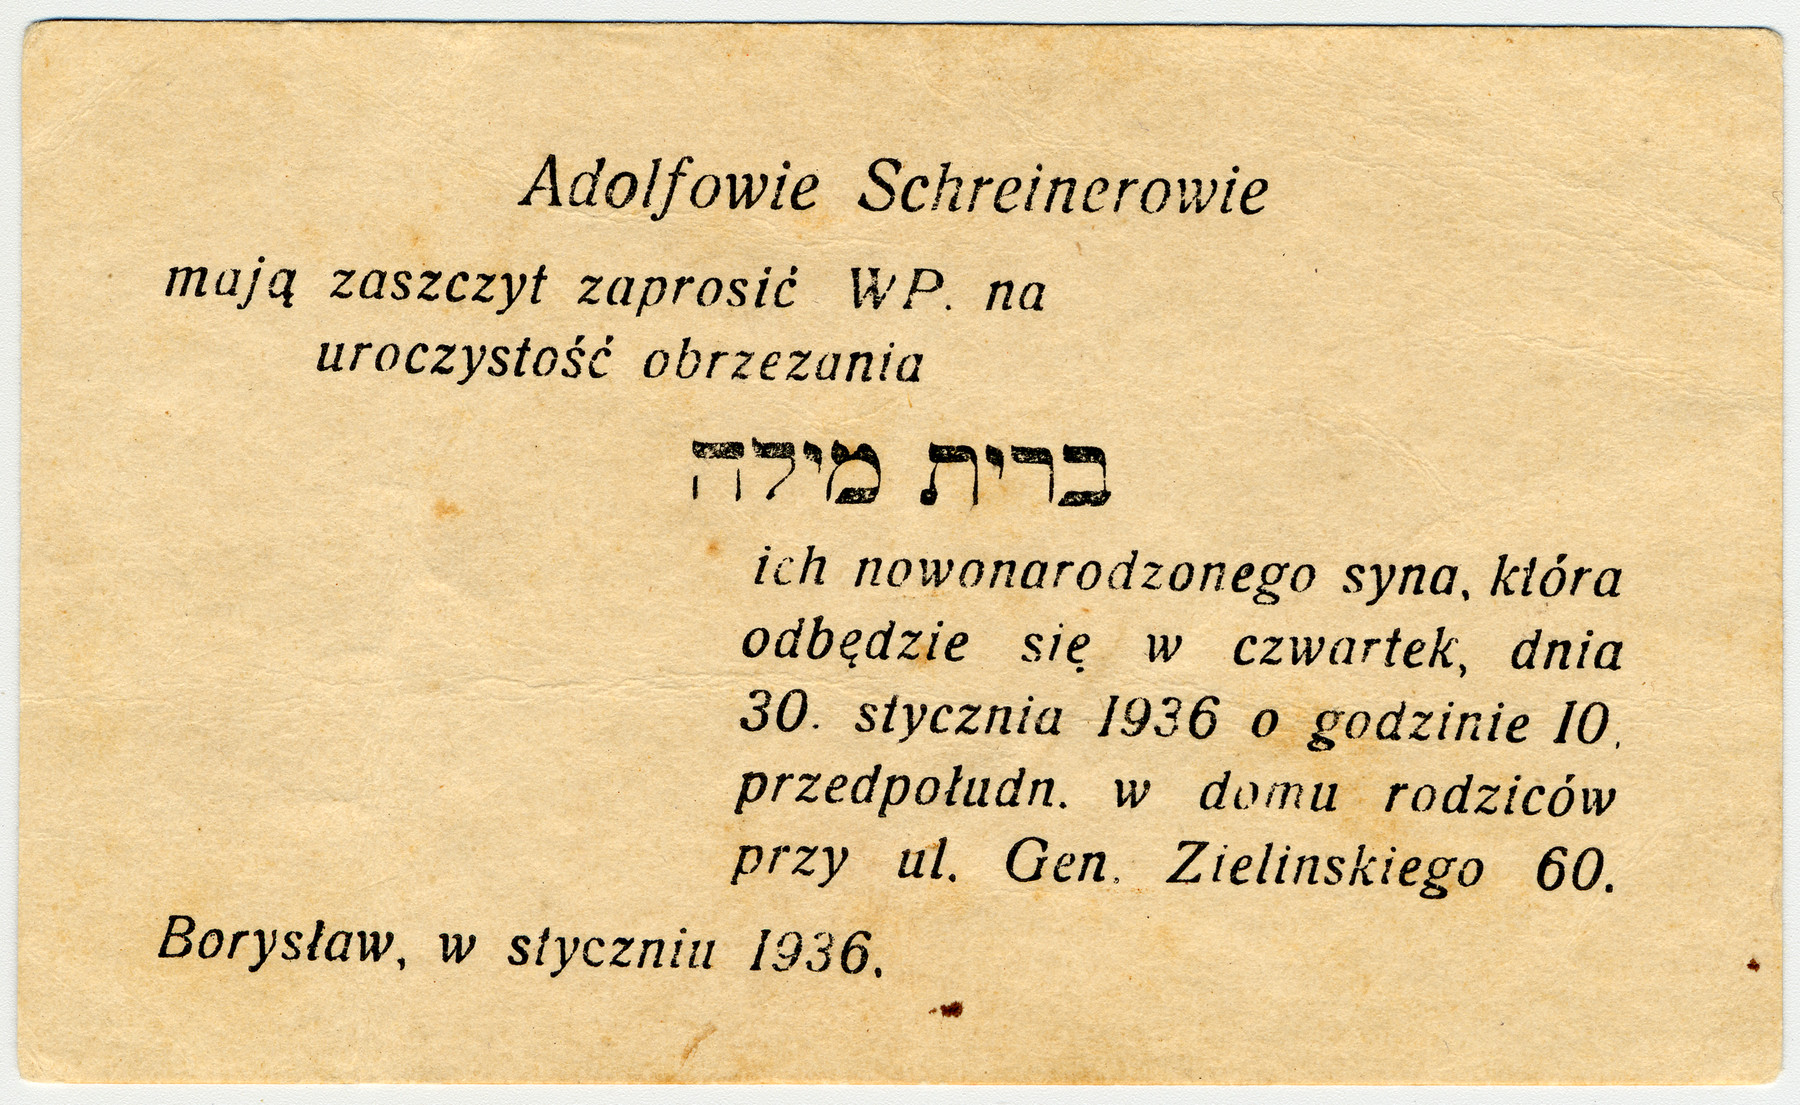 Invitation issued by Aldof Schreiner, uncle of the donor, to attend the brit milah of his newborn son, Jakub.  Adolf Schreiner, his wife Regina nee Kamerman and son JJakub all perished in the Holocaust.  The donor's mother, Henia Kamerman-Hertzberg (b. Sambor, November 3, 1902) was the only known survivor of her family.